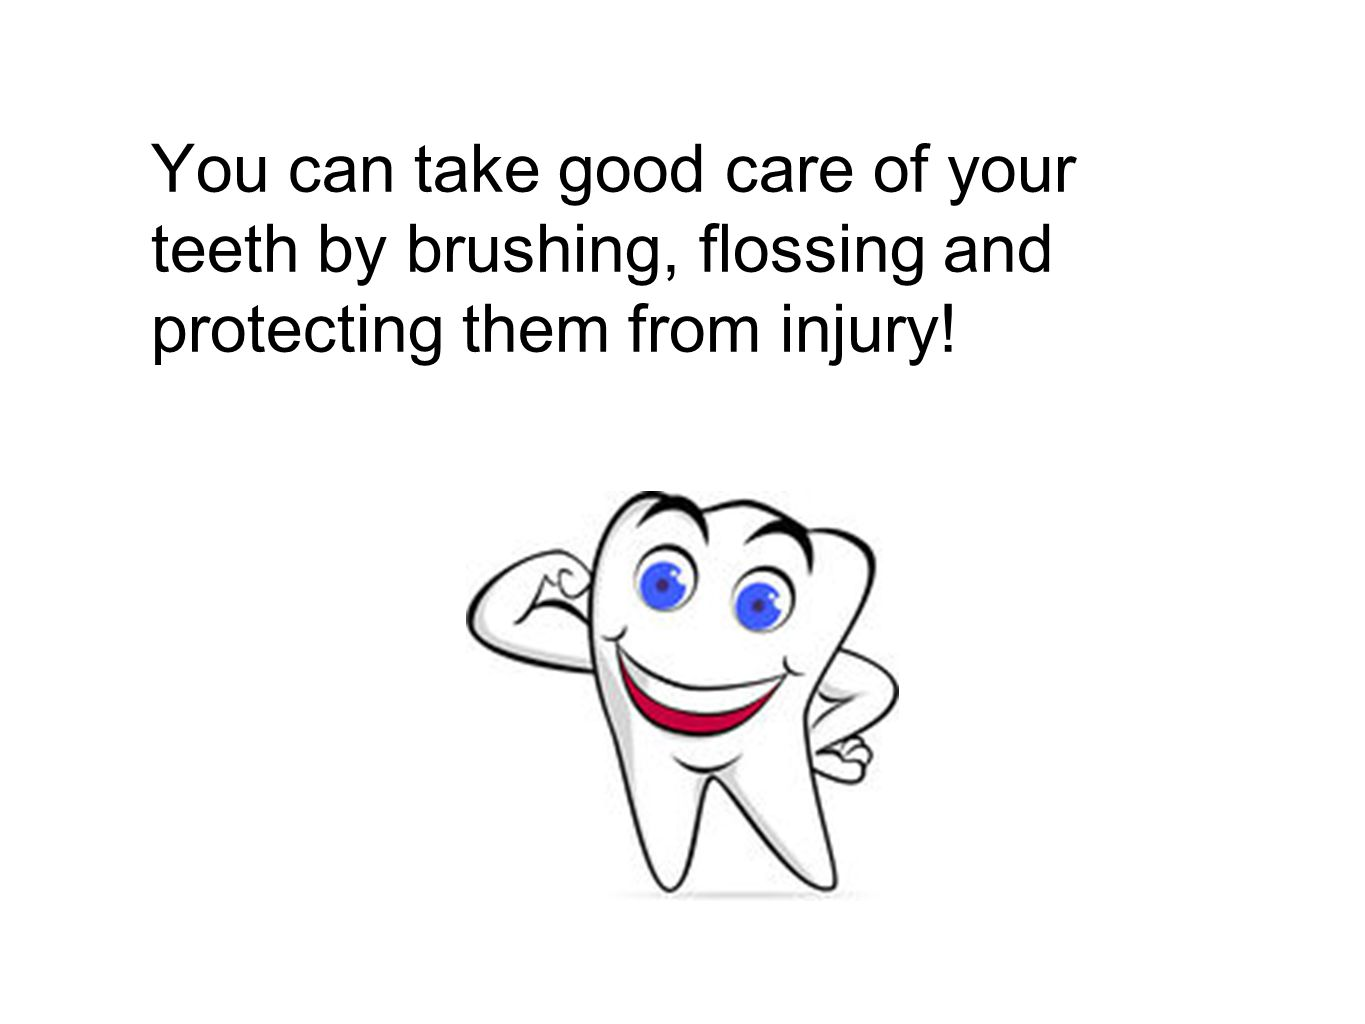 You can take good care of your teeth by brushing, flossing and protecting them from injury!